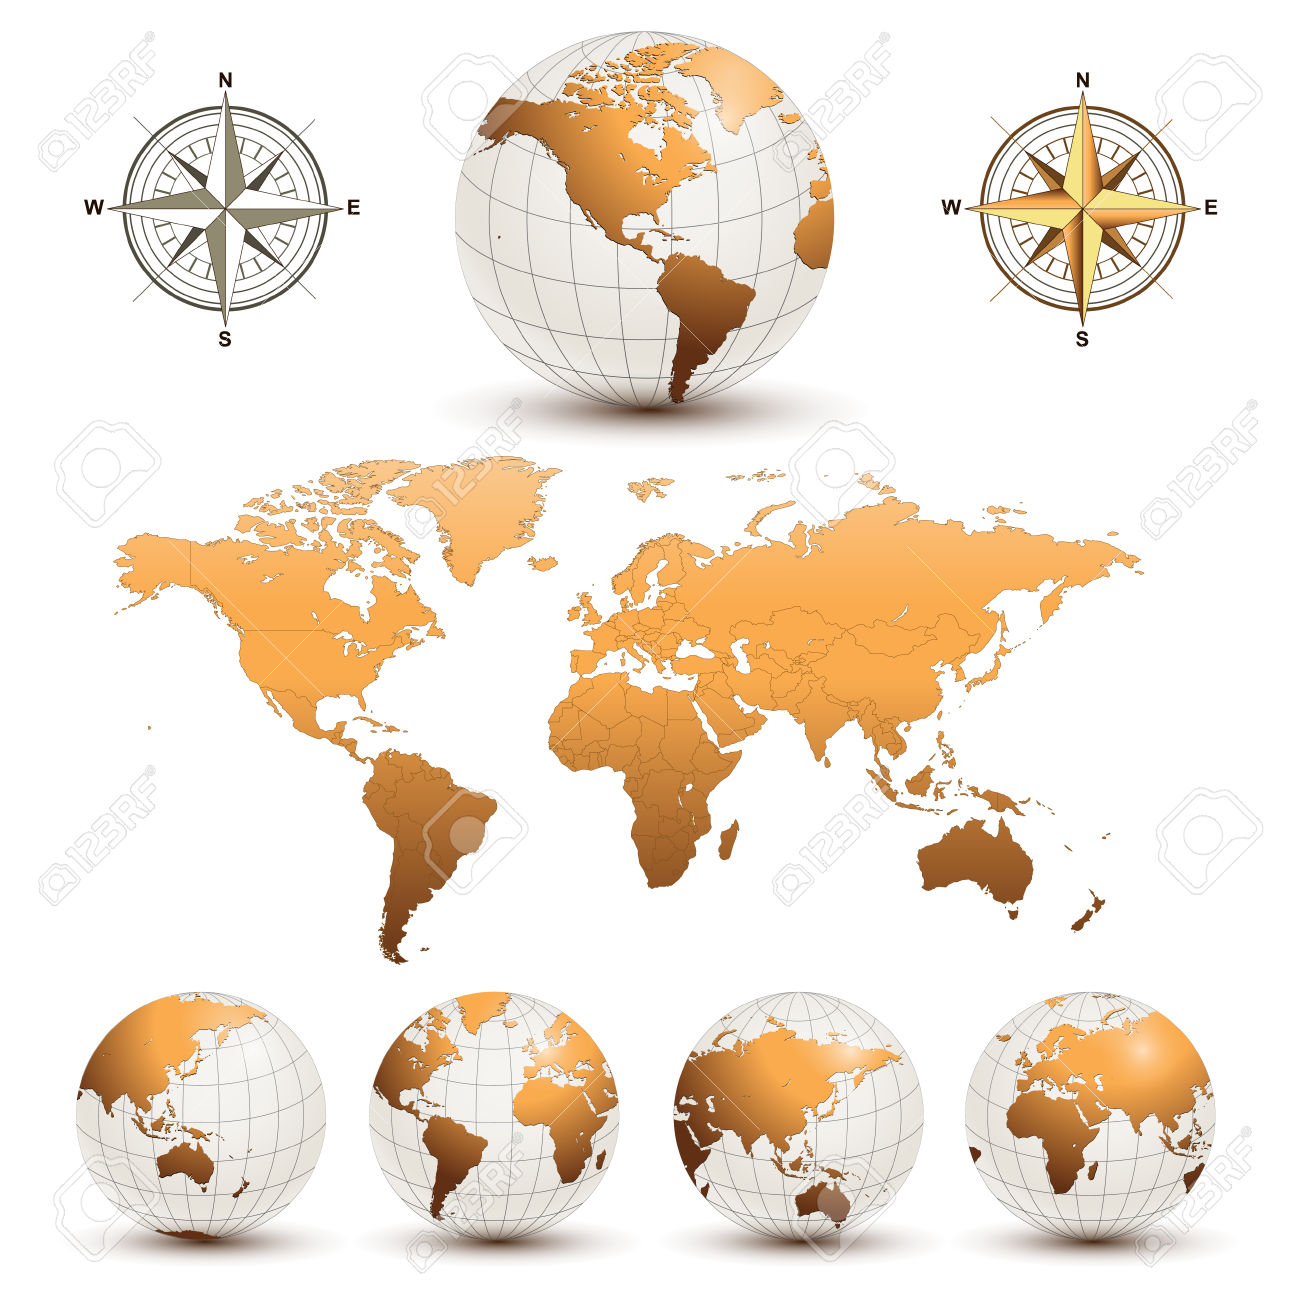 Free clipart of world map clipground earth globes with detailed world map royalty free cliparts gumiabroncs Gallery